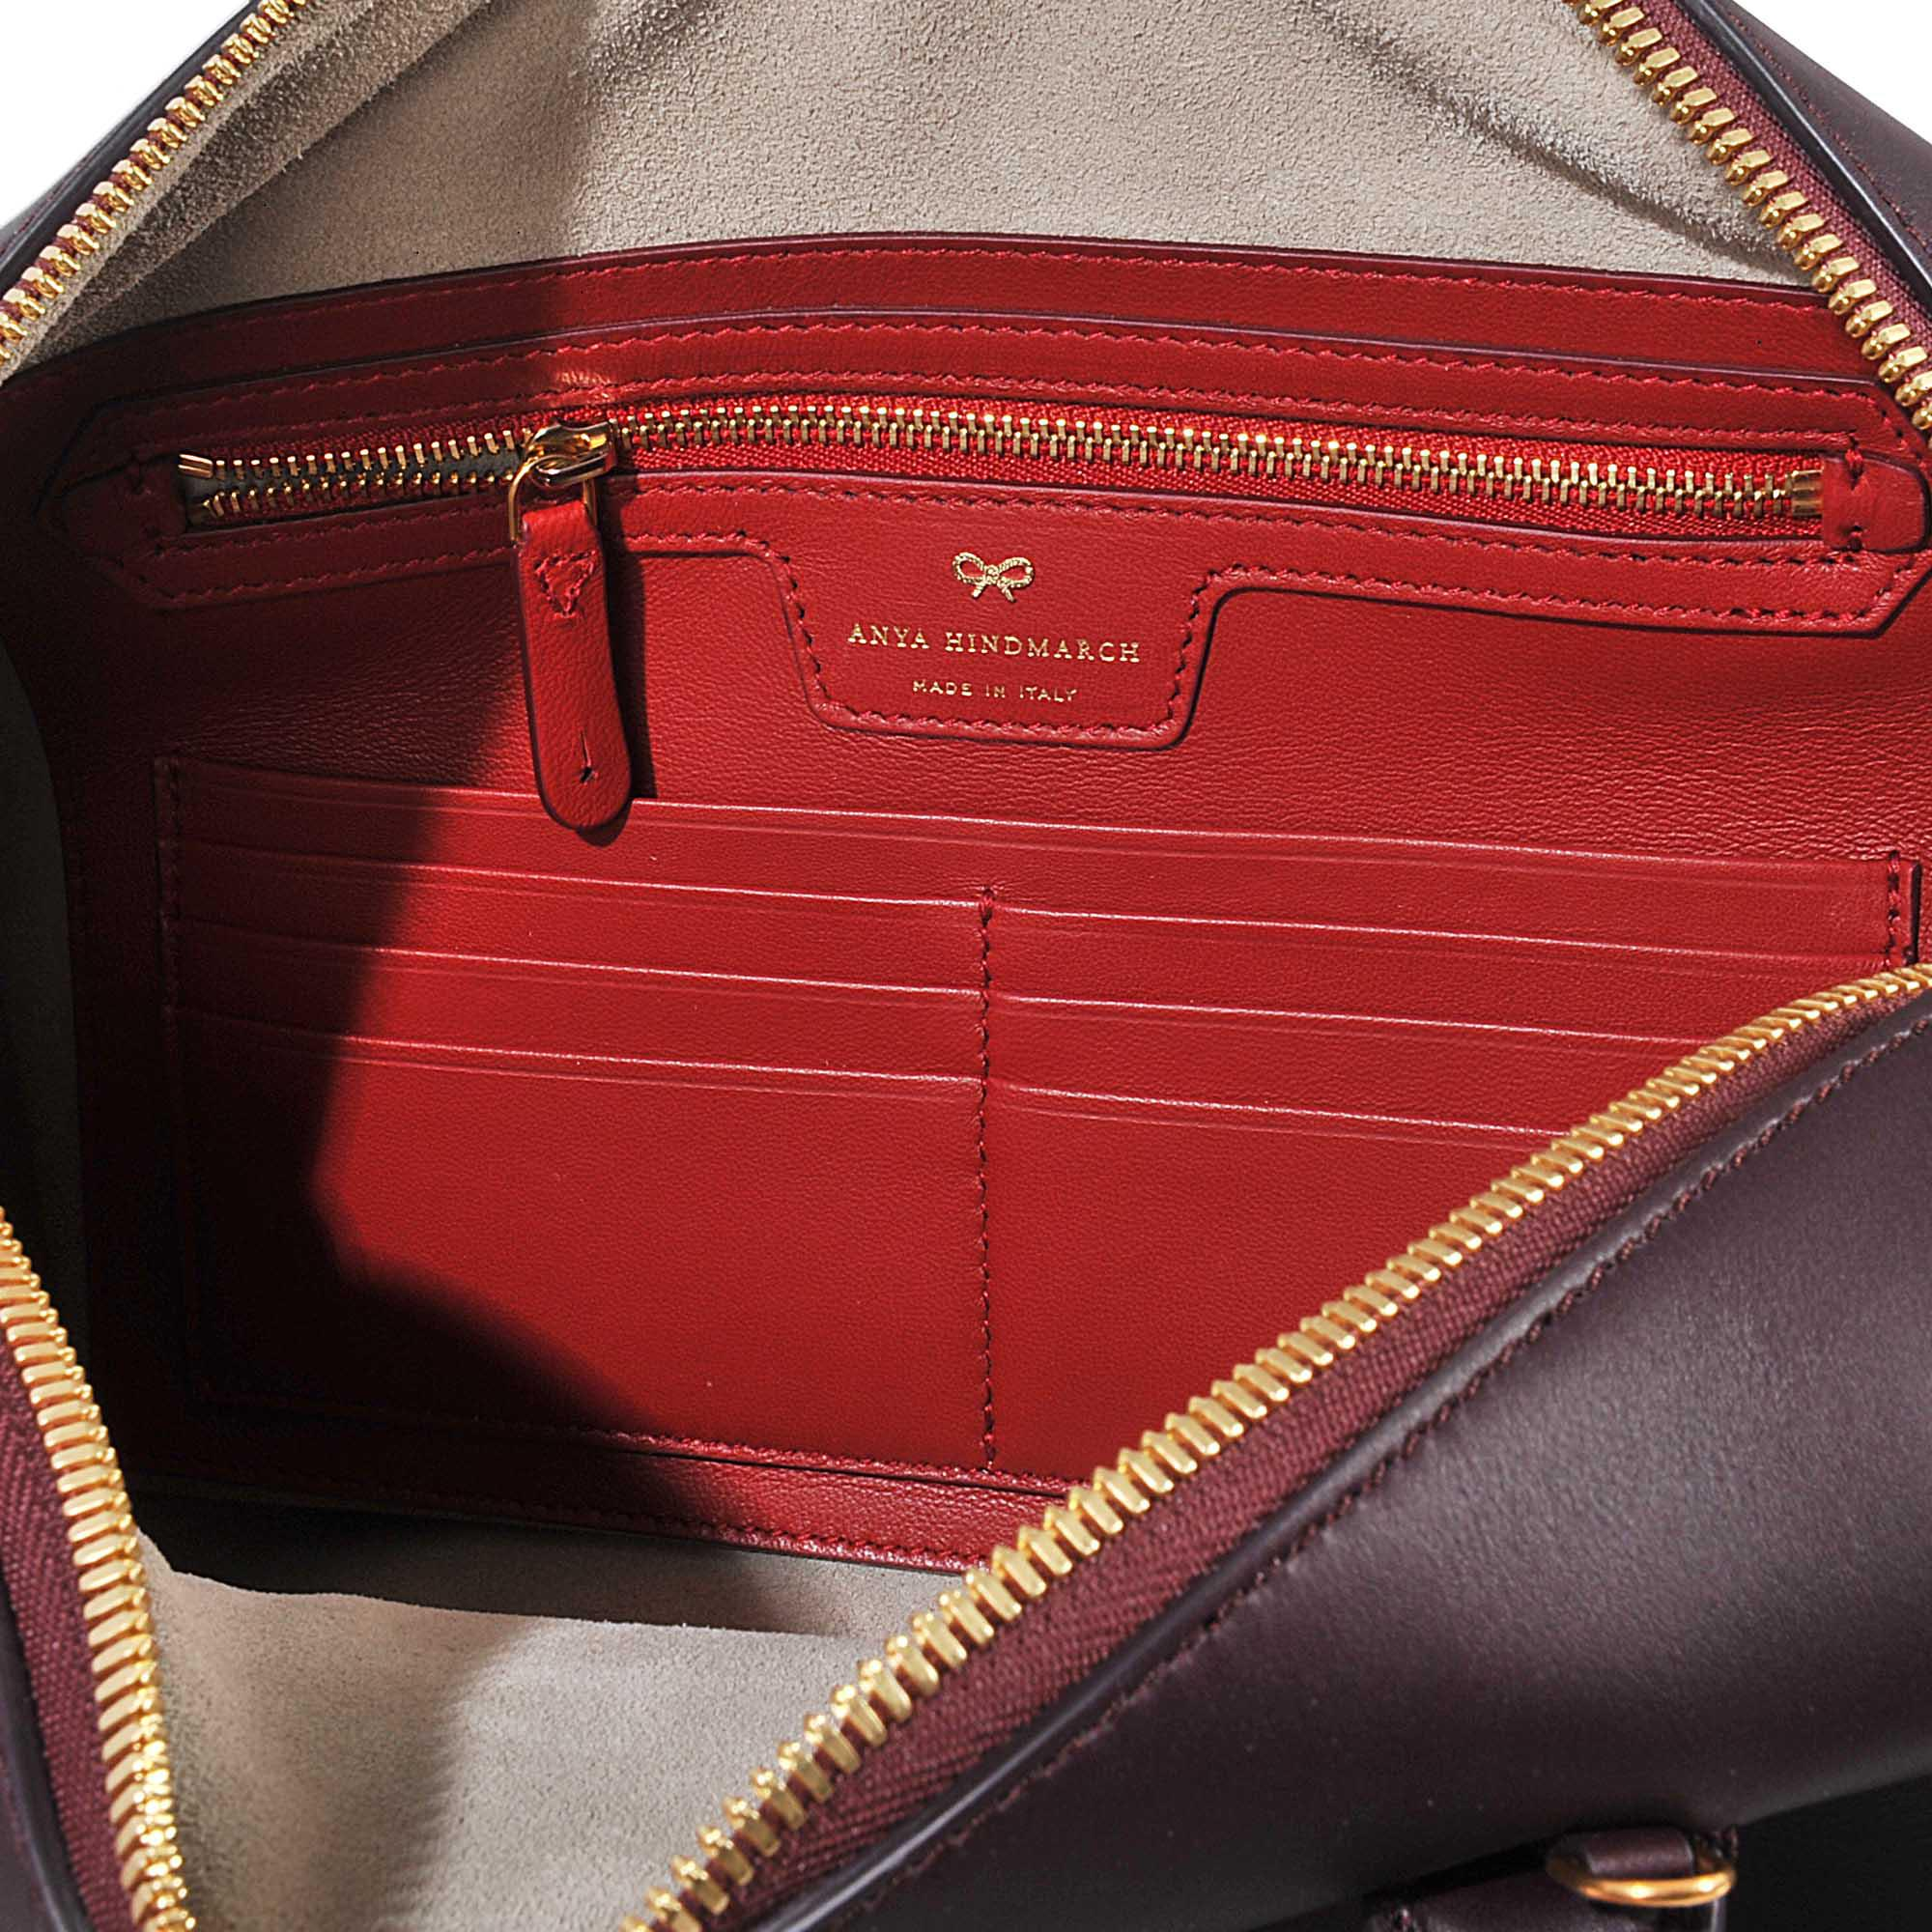 Cheap Sale Get Authentic Vere Barrel Victory Bag Anya Hindmarch Buy Online upLLot